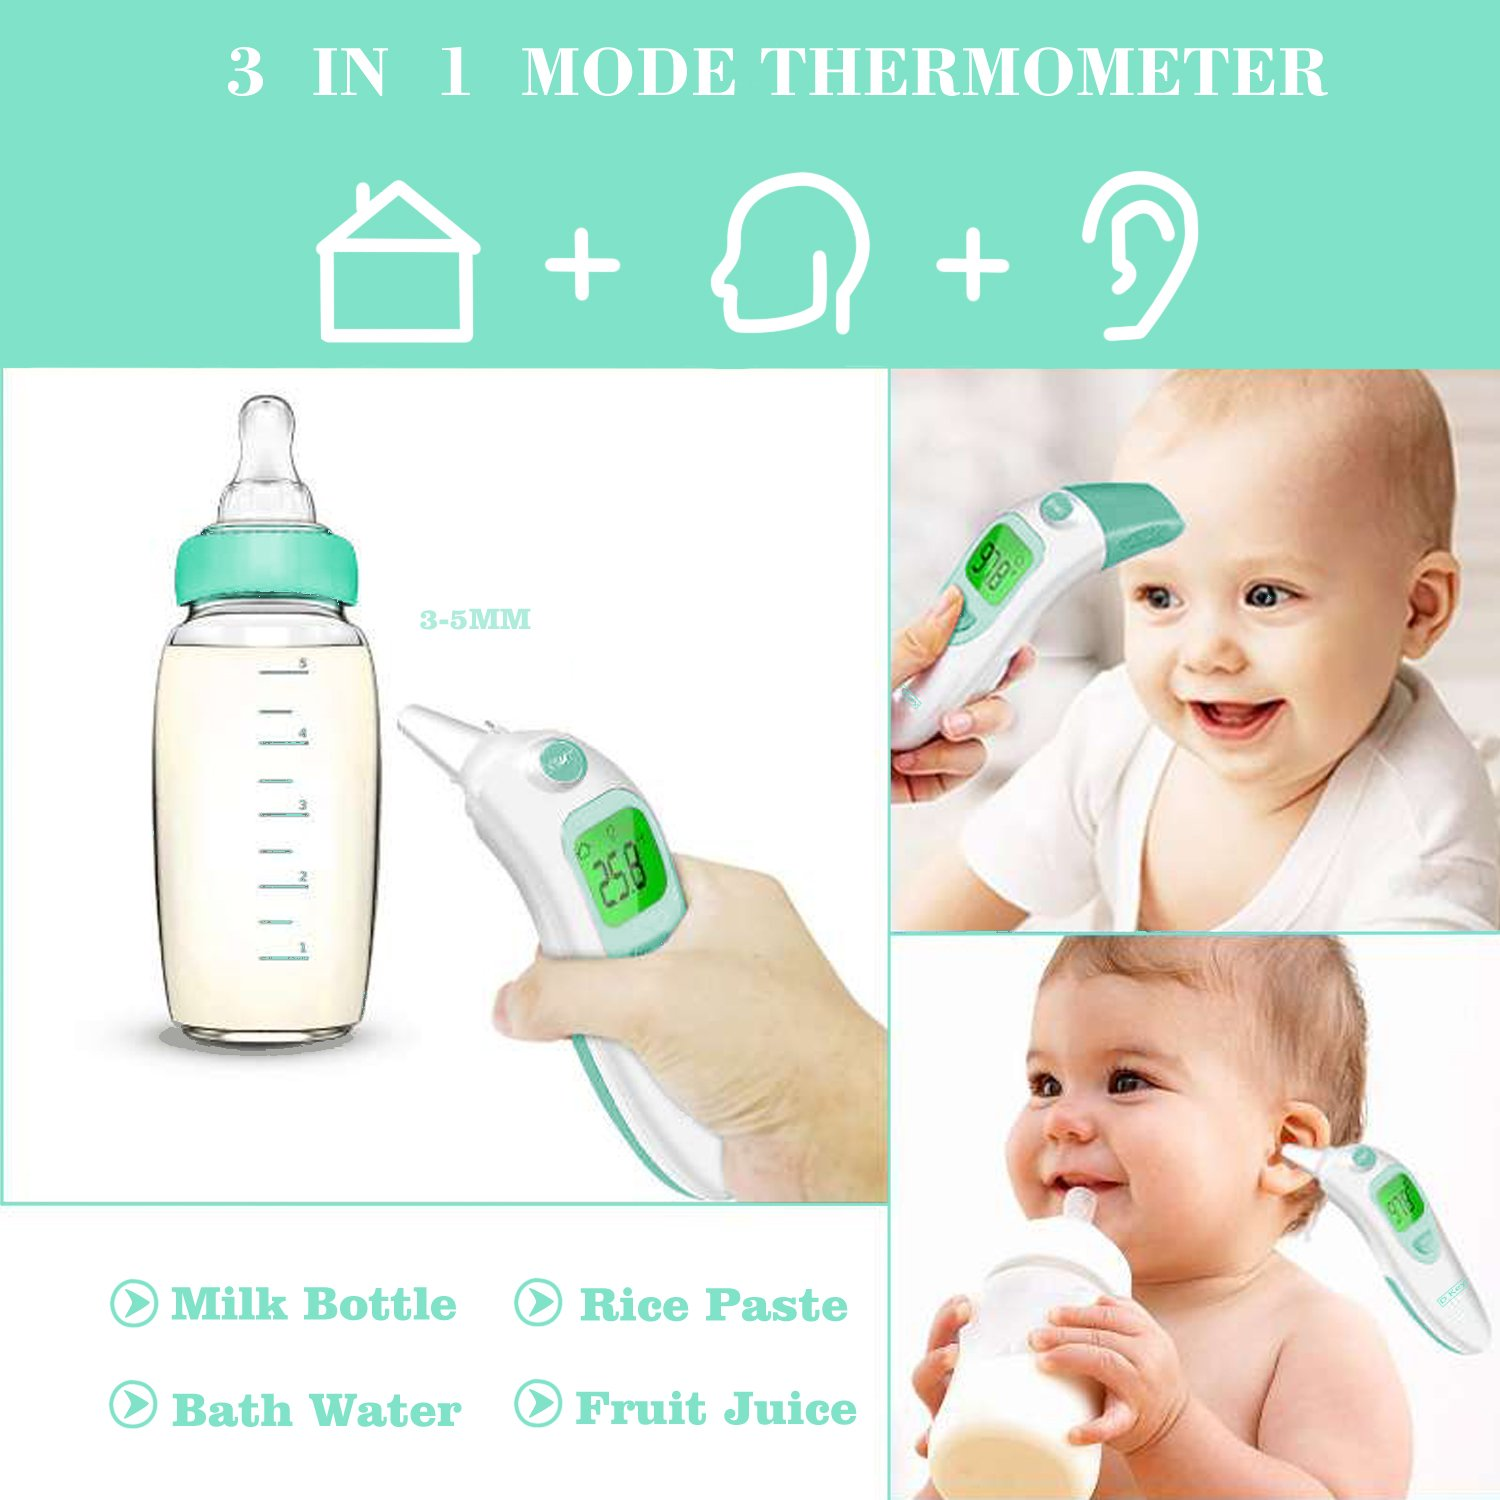 Baby Thermometer Infrared Digital Thermometer//Most Accurate Thermometer for Kids /& Women /& Object Forehead and Ear Thermometer with Instant Read and Fever Indicator BBT Thermometer for Women